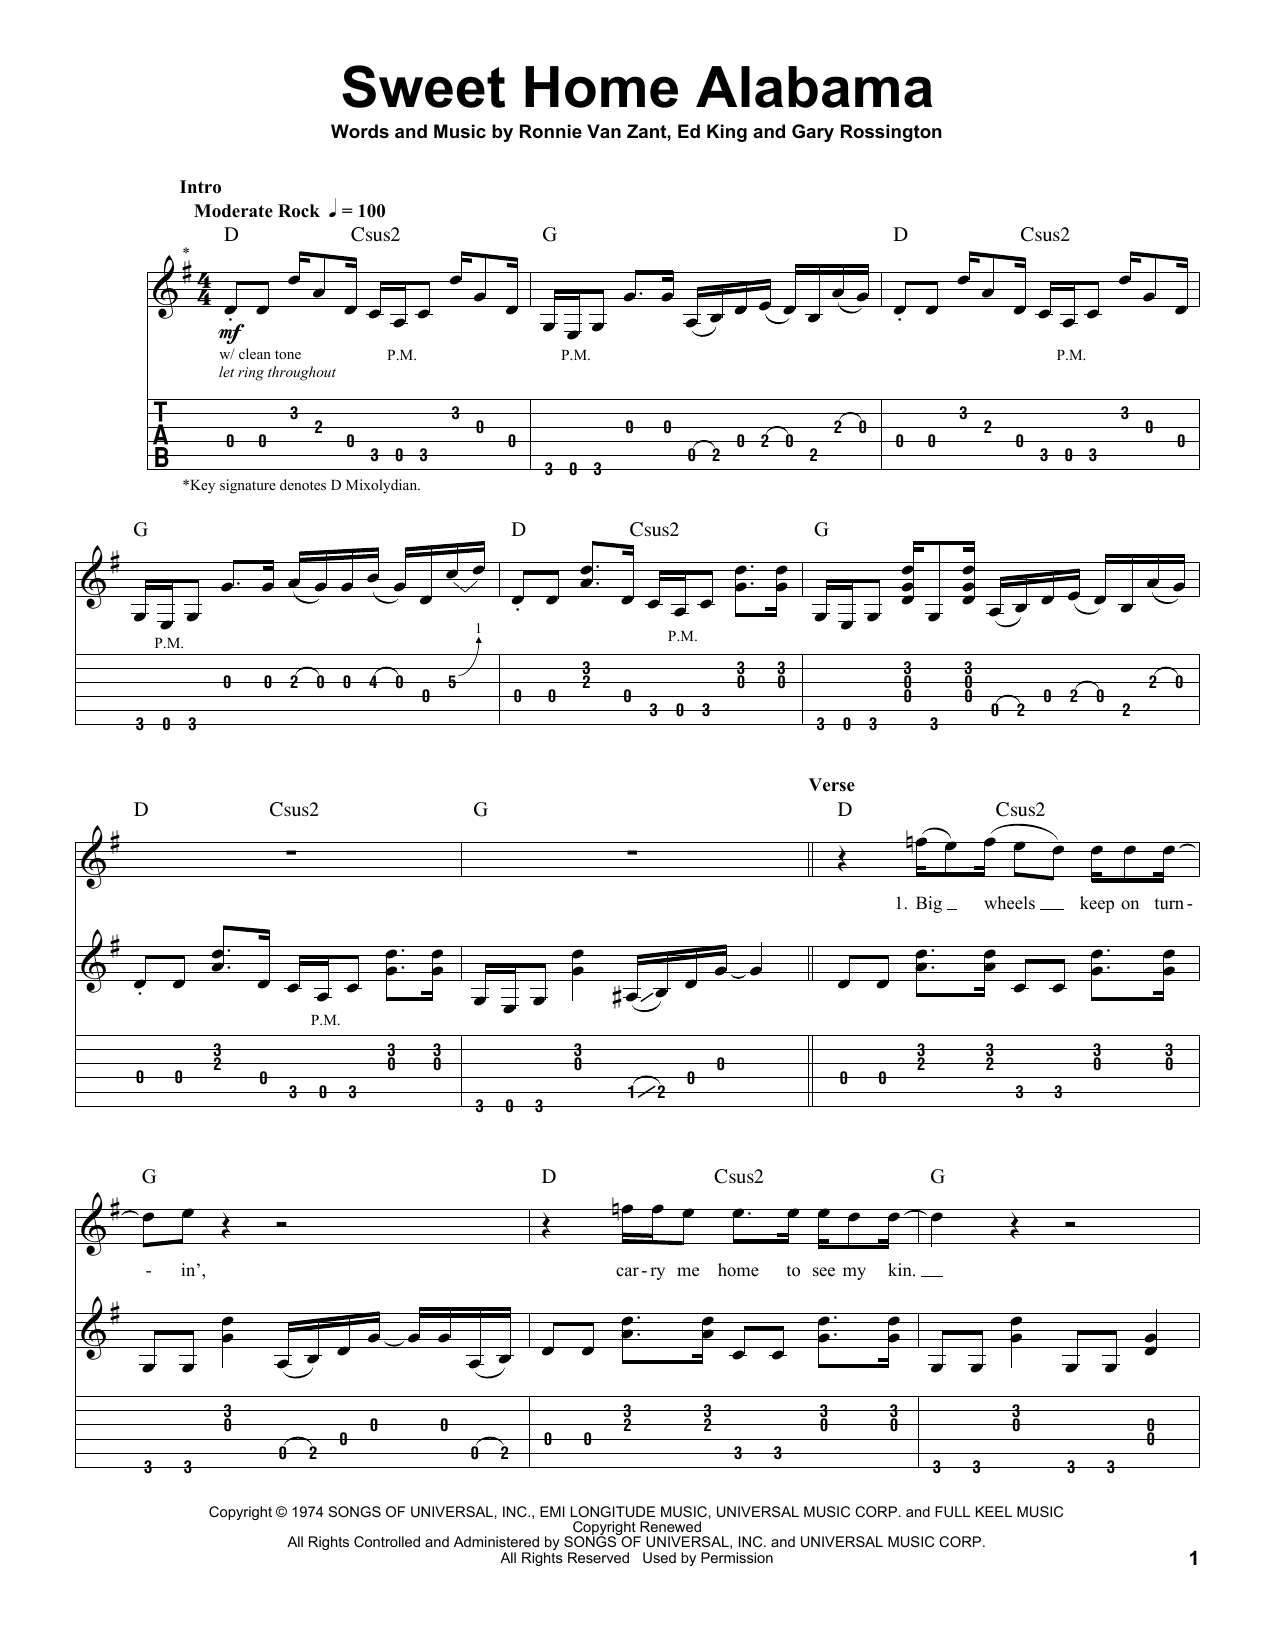 Don't ask me no questions · down south jukin' · free bird · gimme three steps · i know a little · the needle and the spoon · sweet home alabama · that smell. Sweet Home Alabama By Lynyrd Skynyrd Guitar Tab Play Along Guitar Instructor